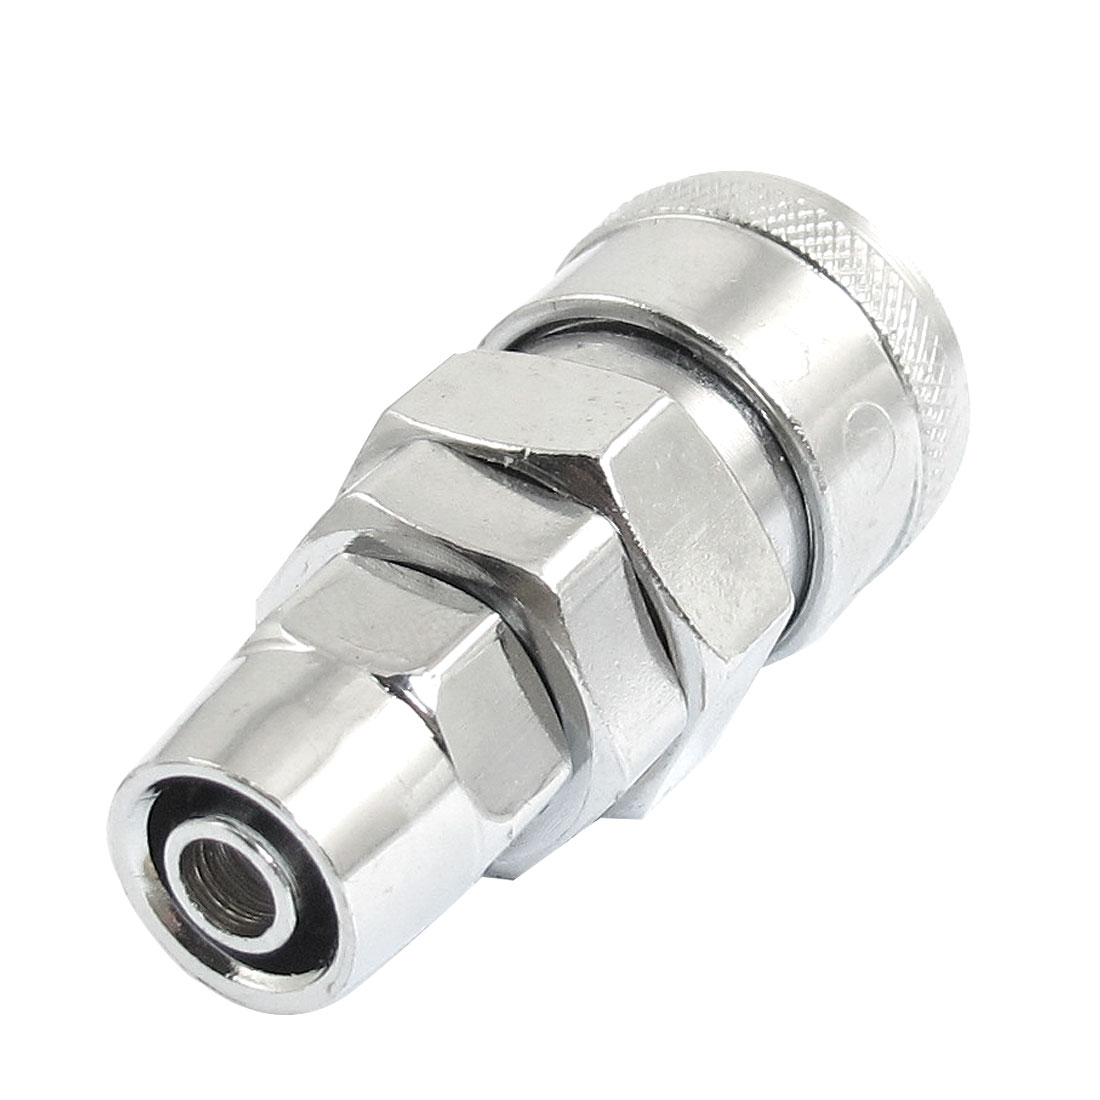 30SP Connector Air Quick Coupler Adapter Connector Fittings for 6.5mm x 10mm Tube